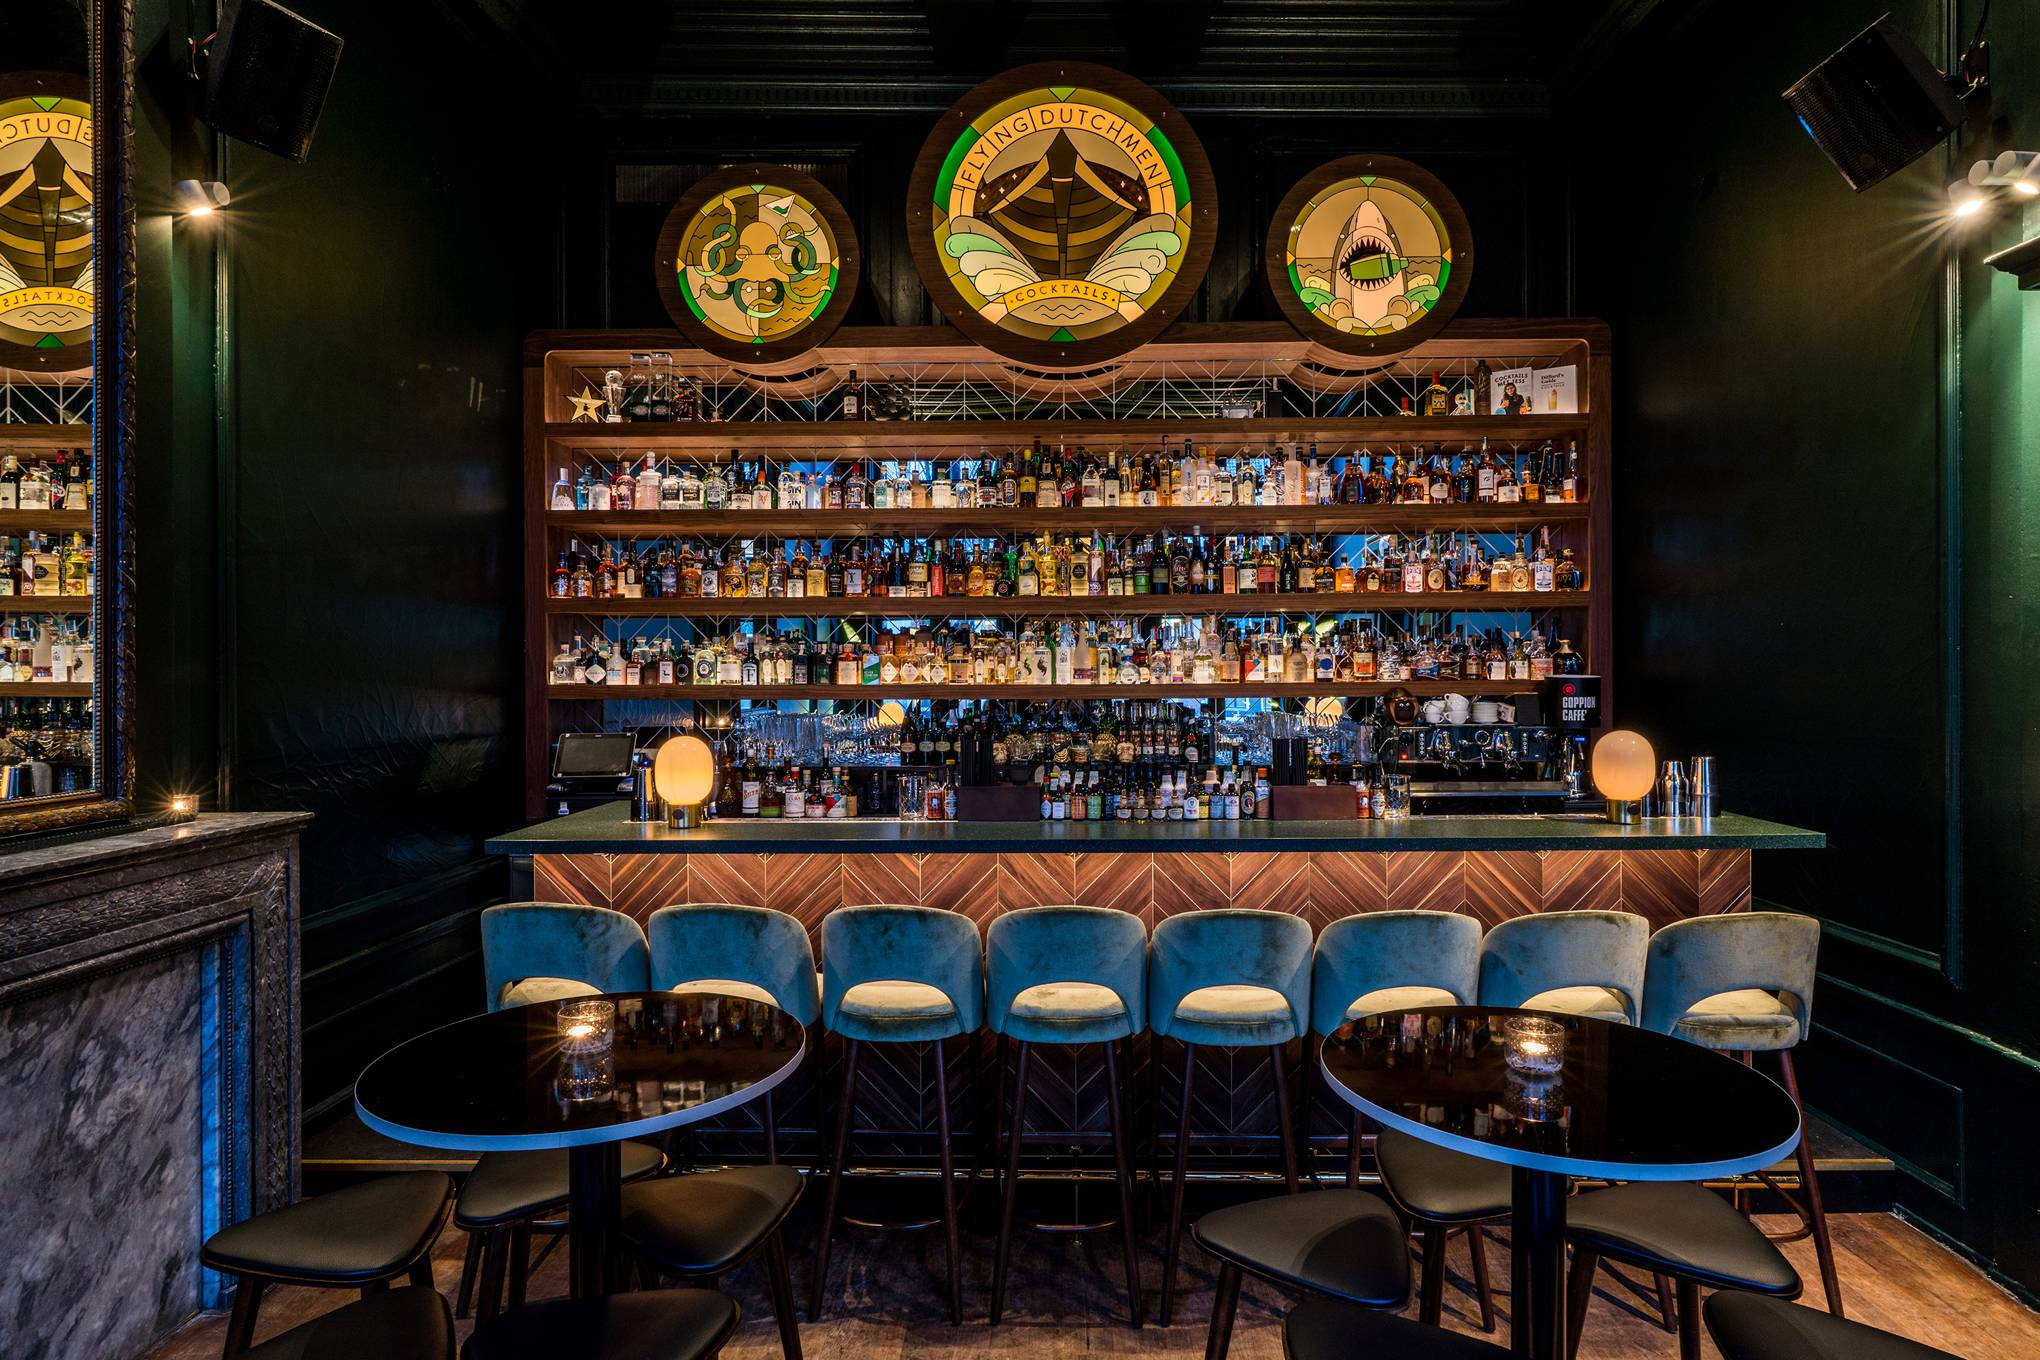 The best bars in Amsterdam